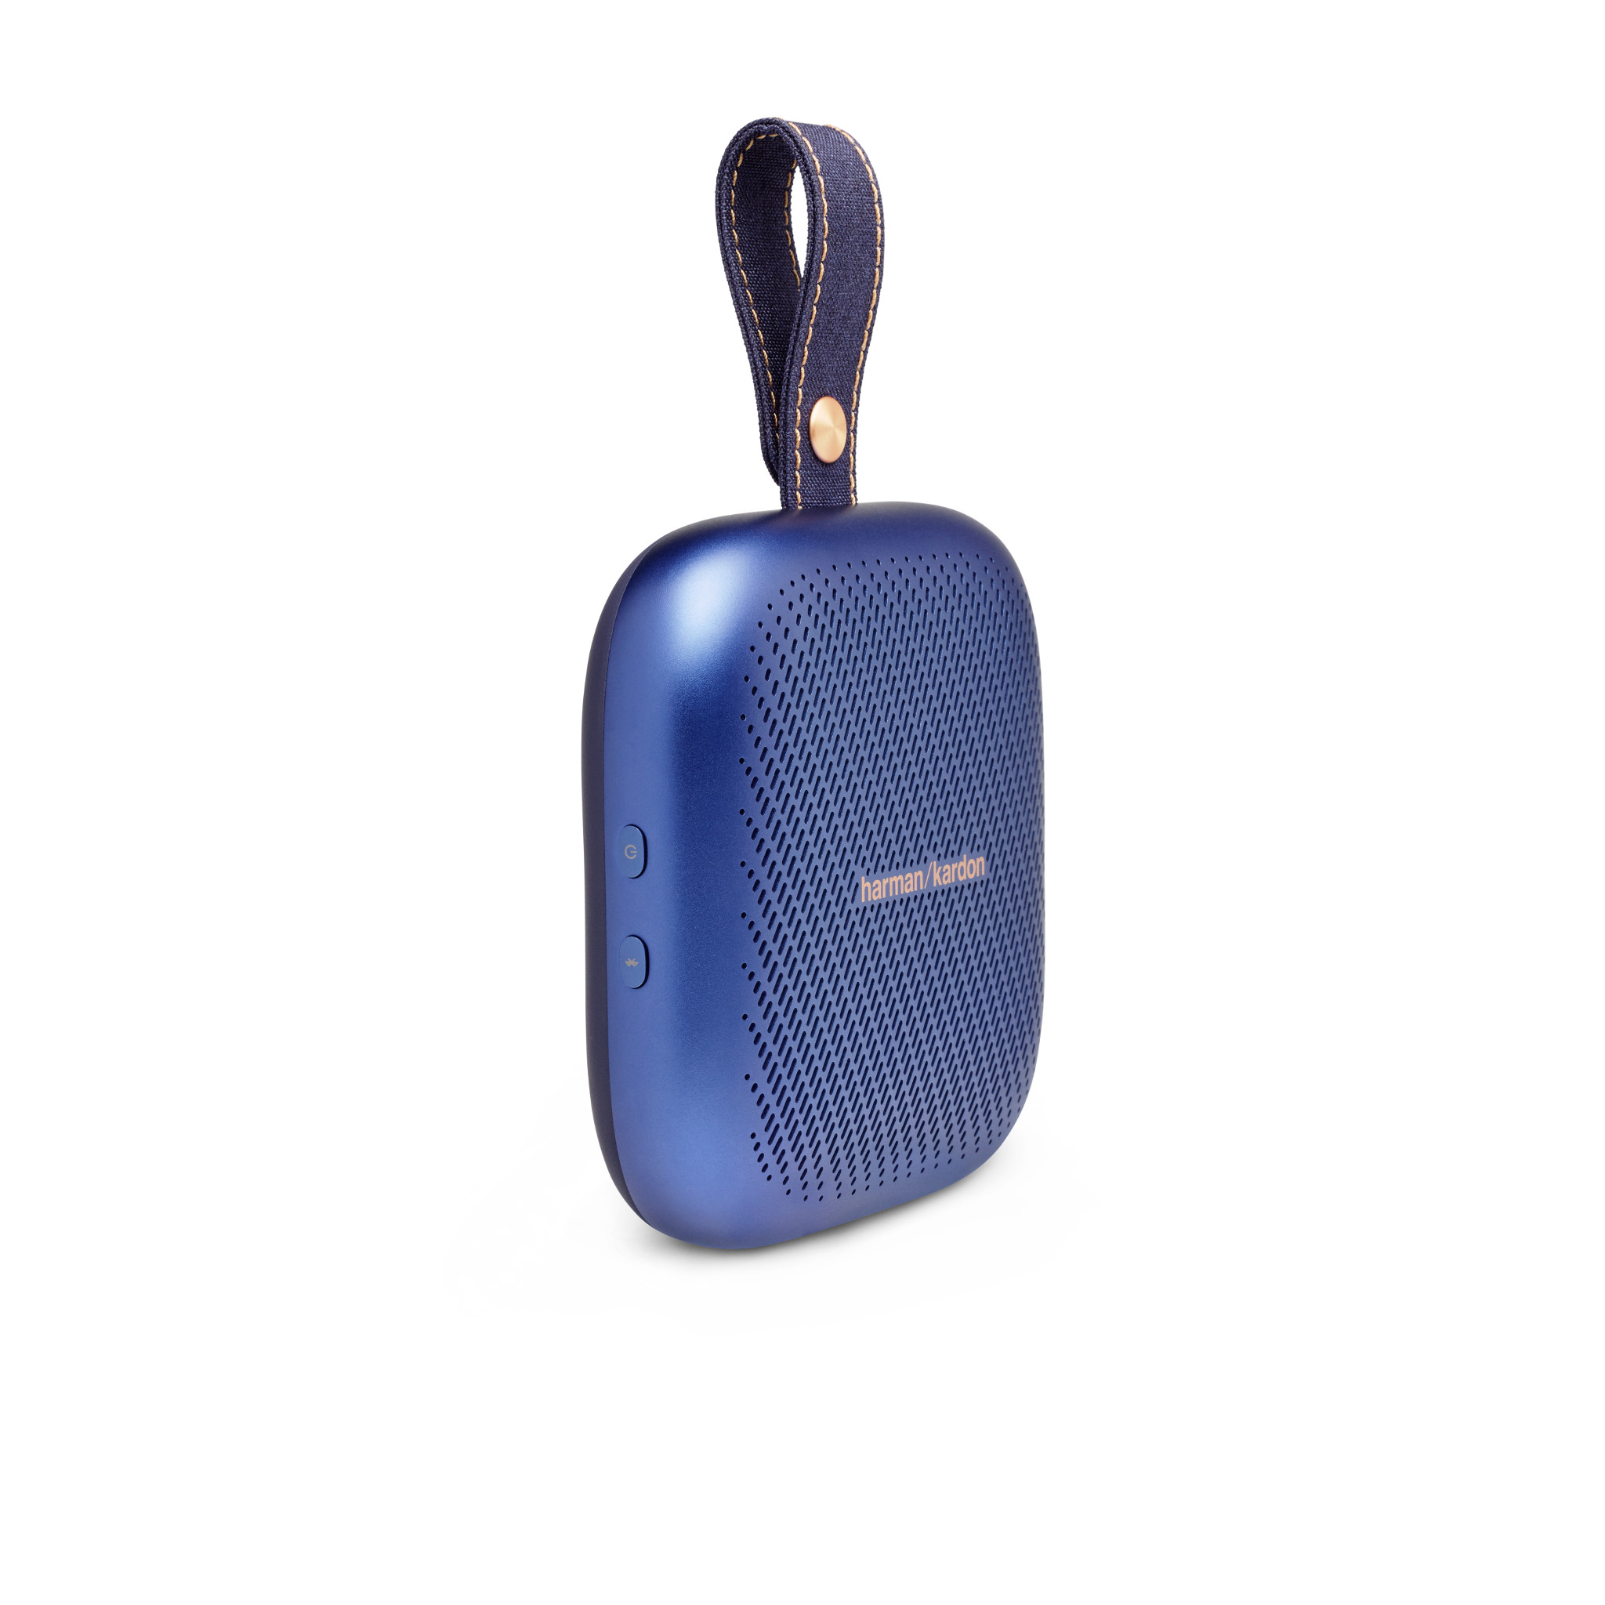 Harman Kardon Neo - Midnight Blue - Portable Bluetooth speaker - Detailshot 2